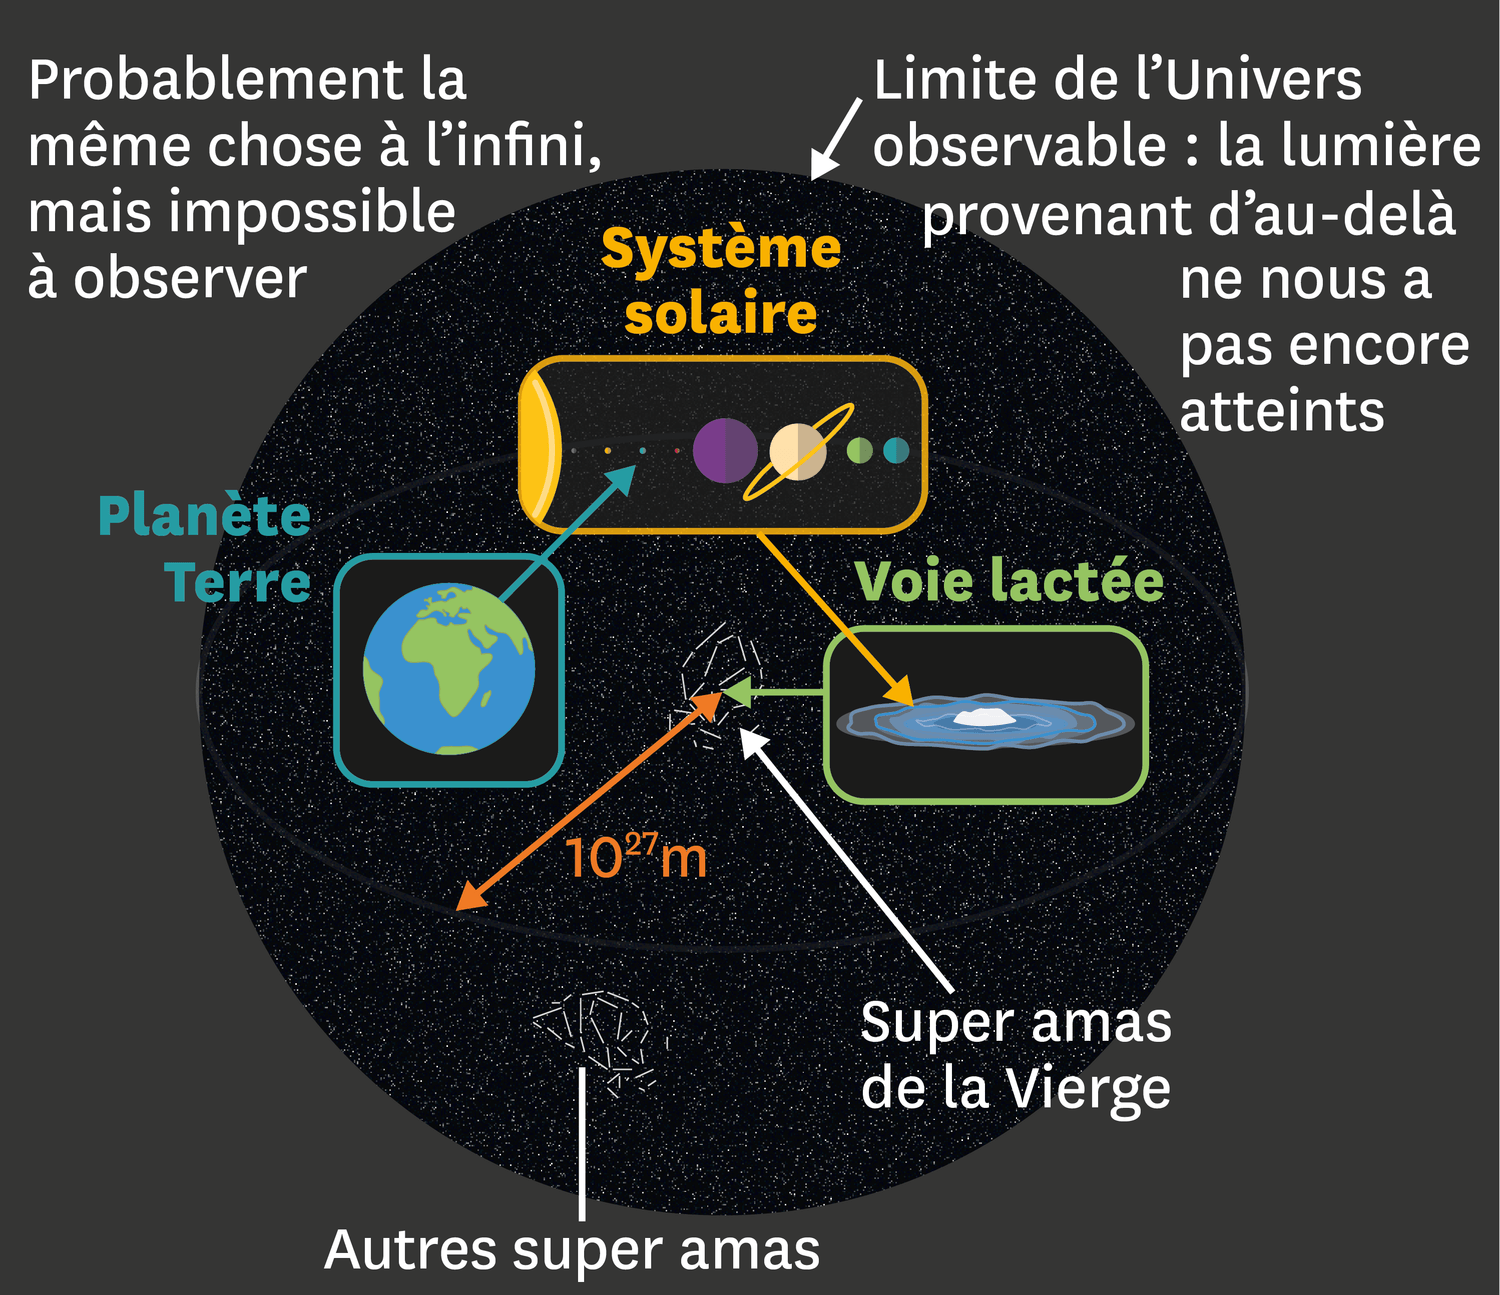 <stamp theme=pc-green1>Doc. 2</stamp> L'Univers observable.